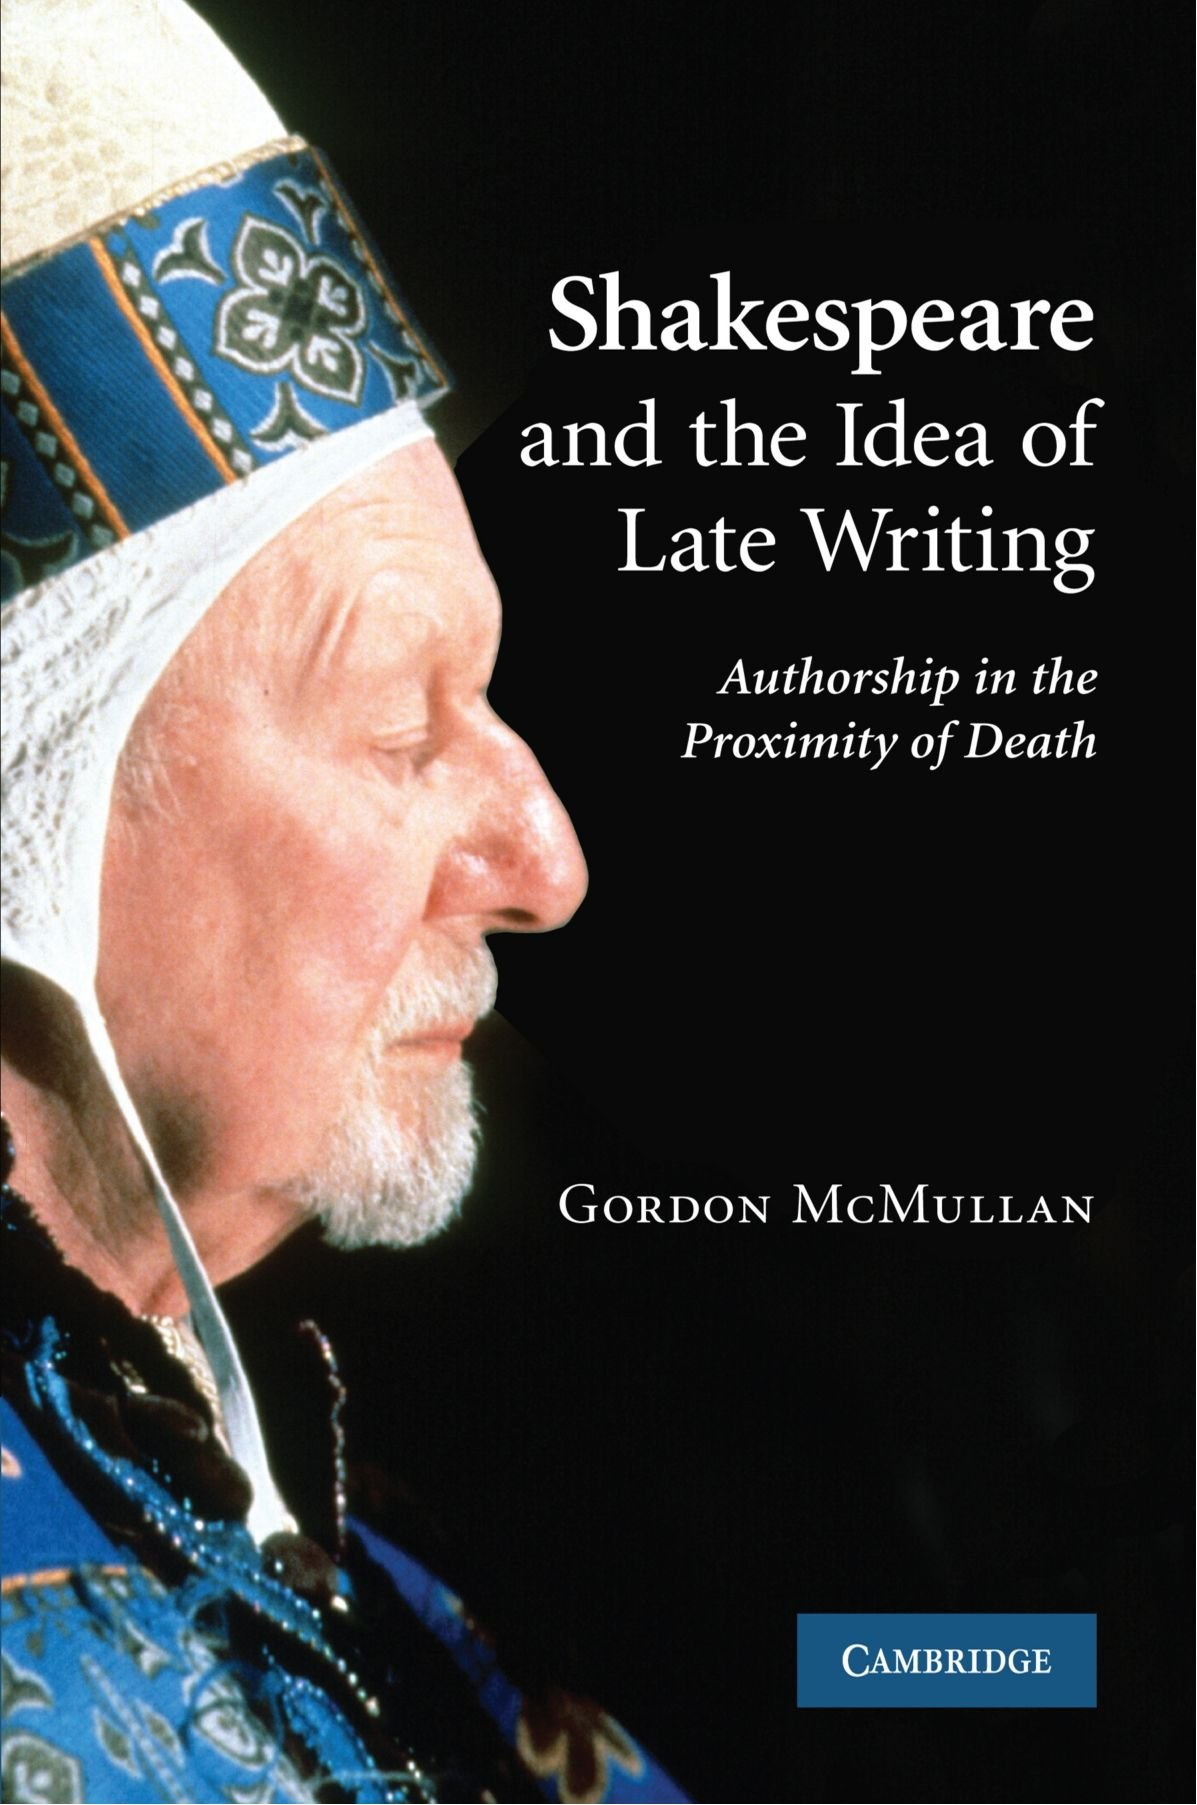 Download Shakespeare and the Idea of Late Writing: Authorship in the Proximity of Death ebook